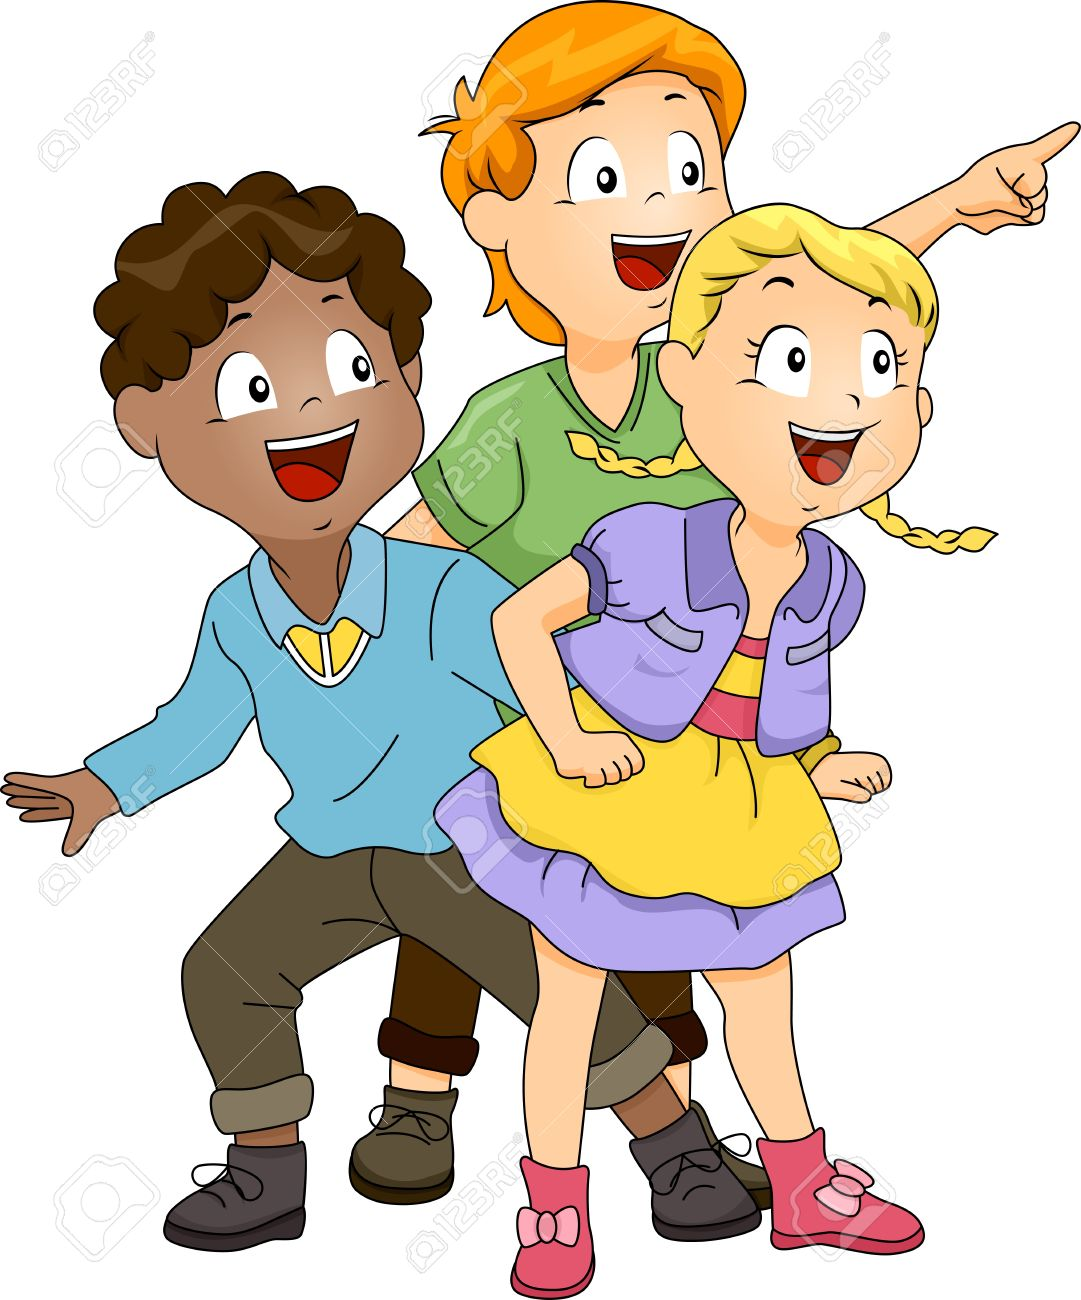 Clipart kids laughing. In class clipartfest excited